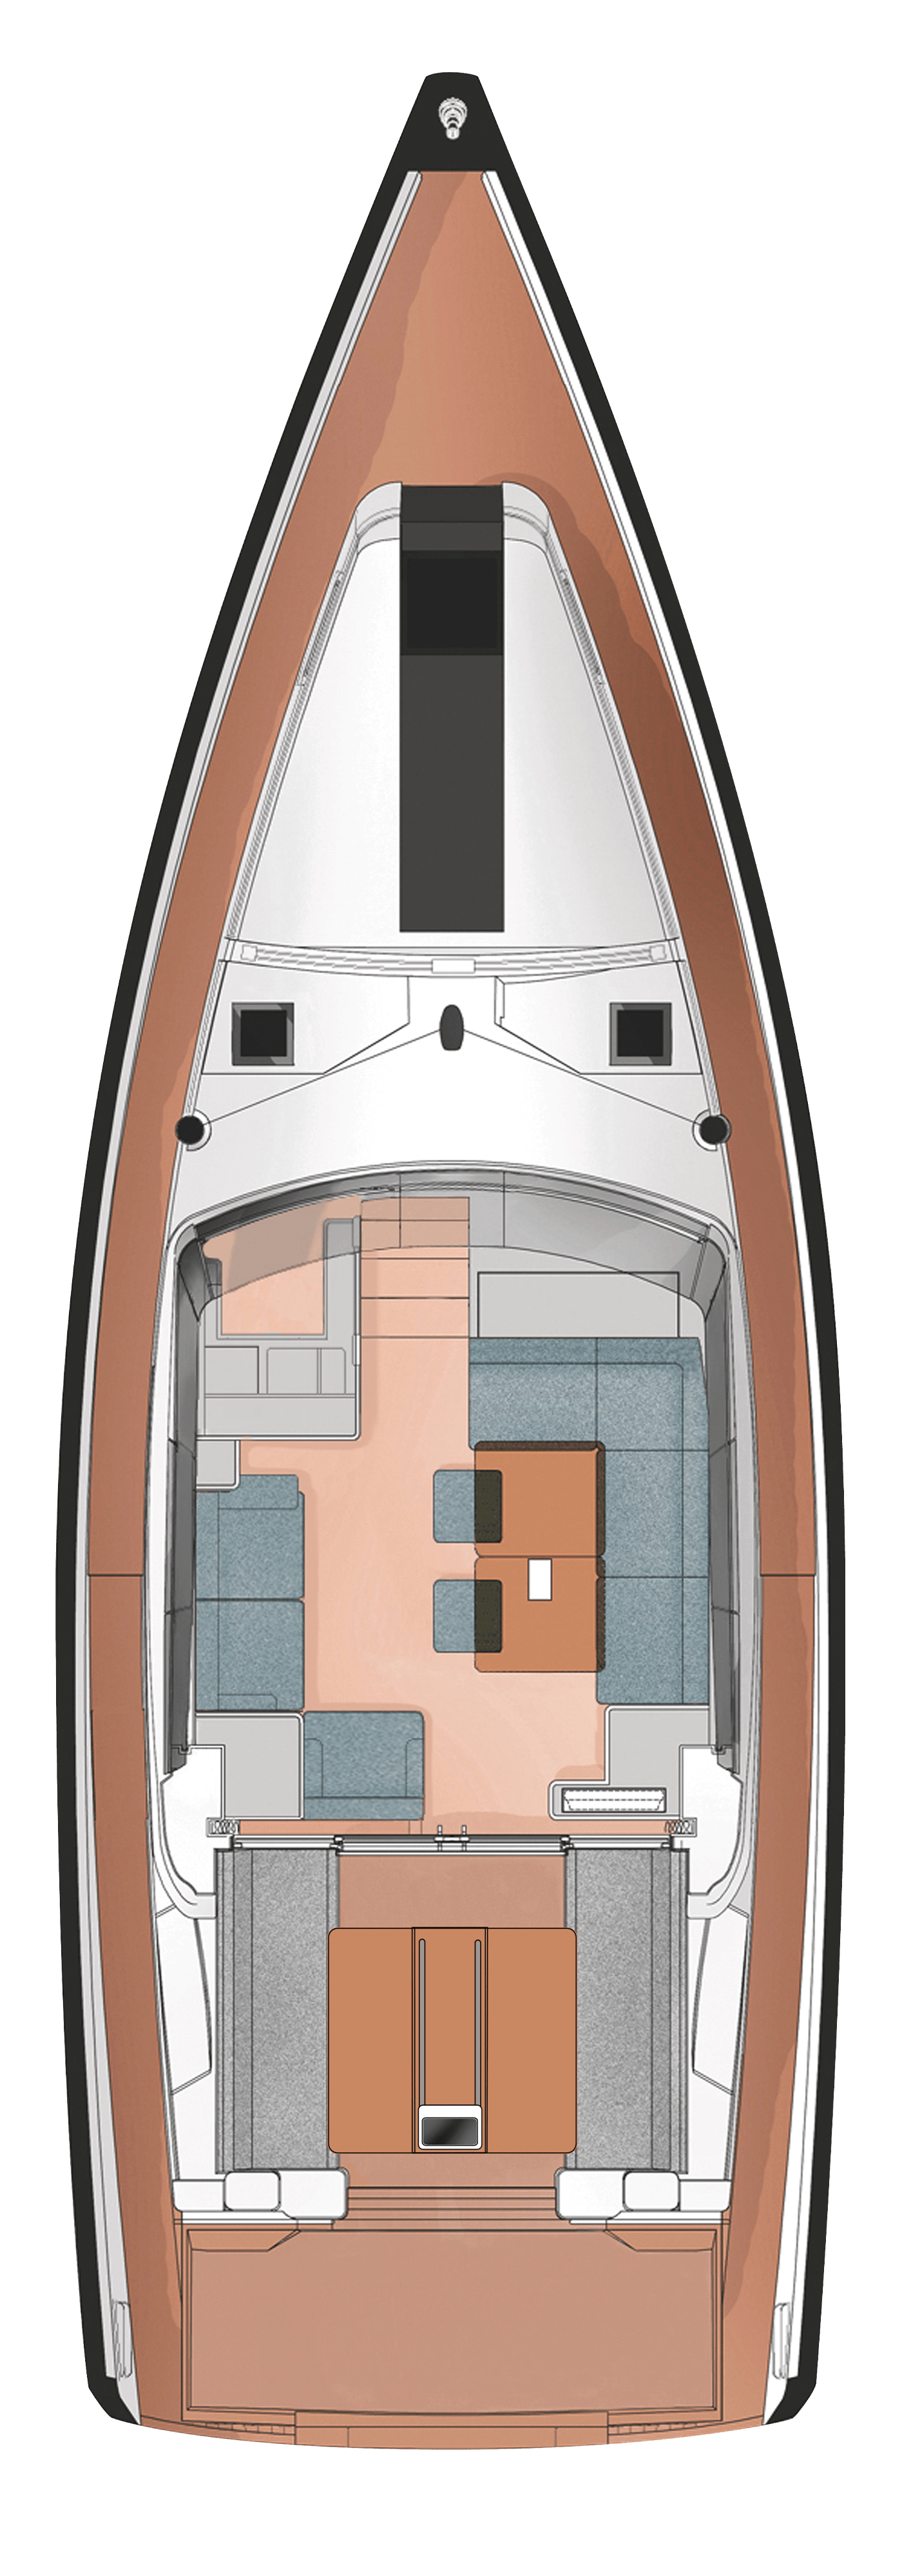 Layouts for Decksaloon 45